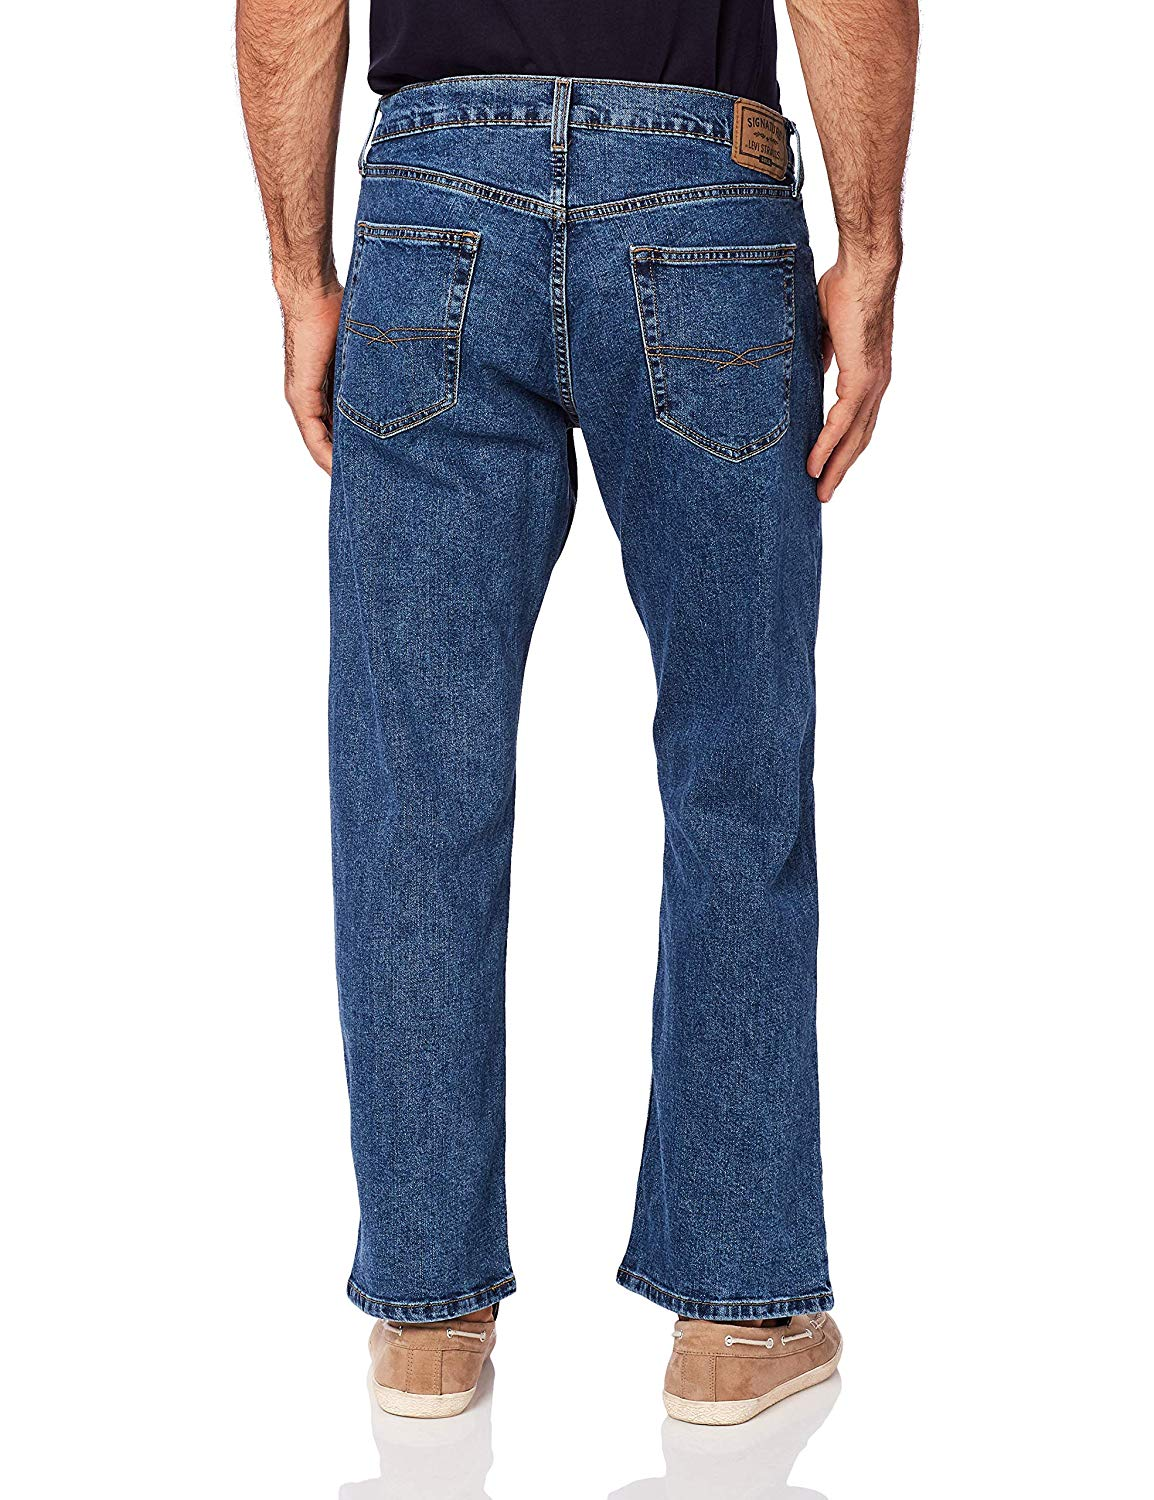 Signature-By-Levi-Strauss-amp-Co-Gold-Label-Indigo-Mens-Relaxed-Flex-Jeans miniature 2